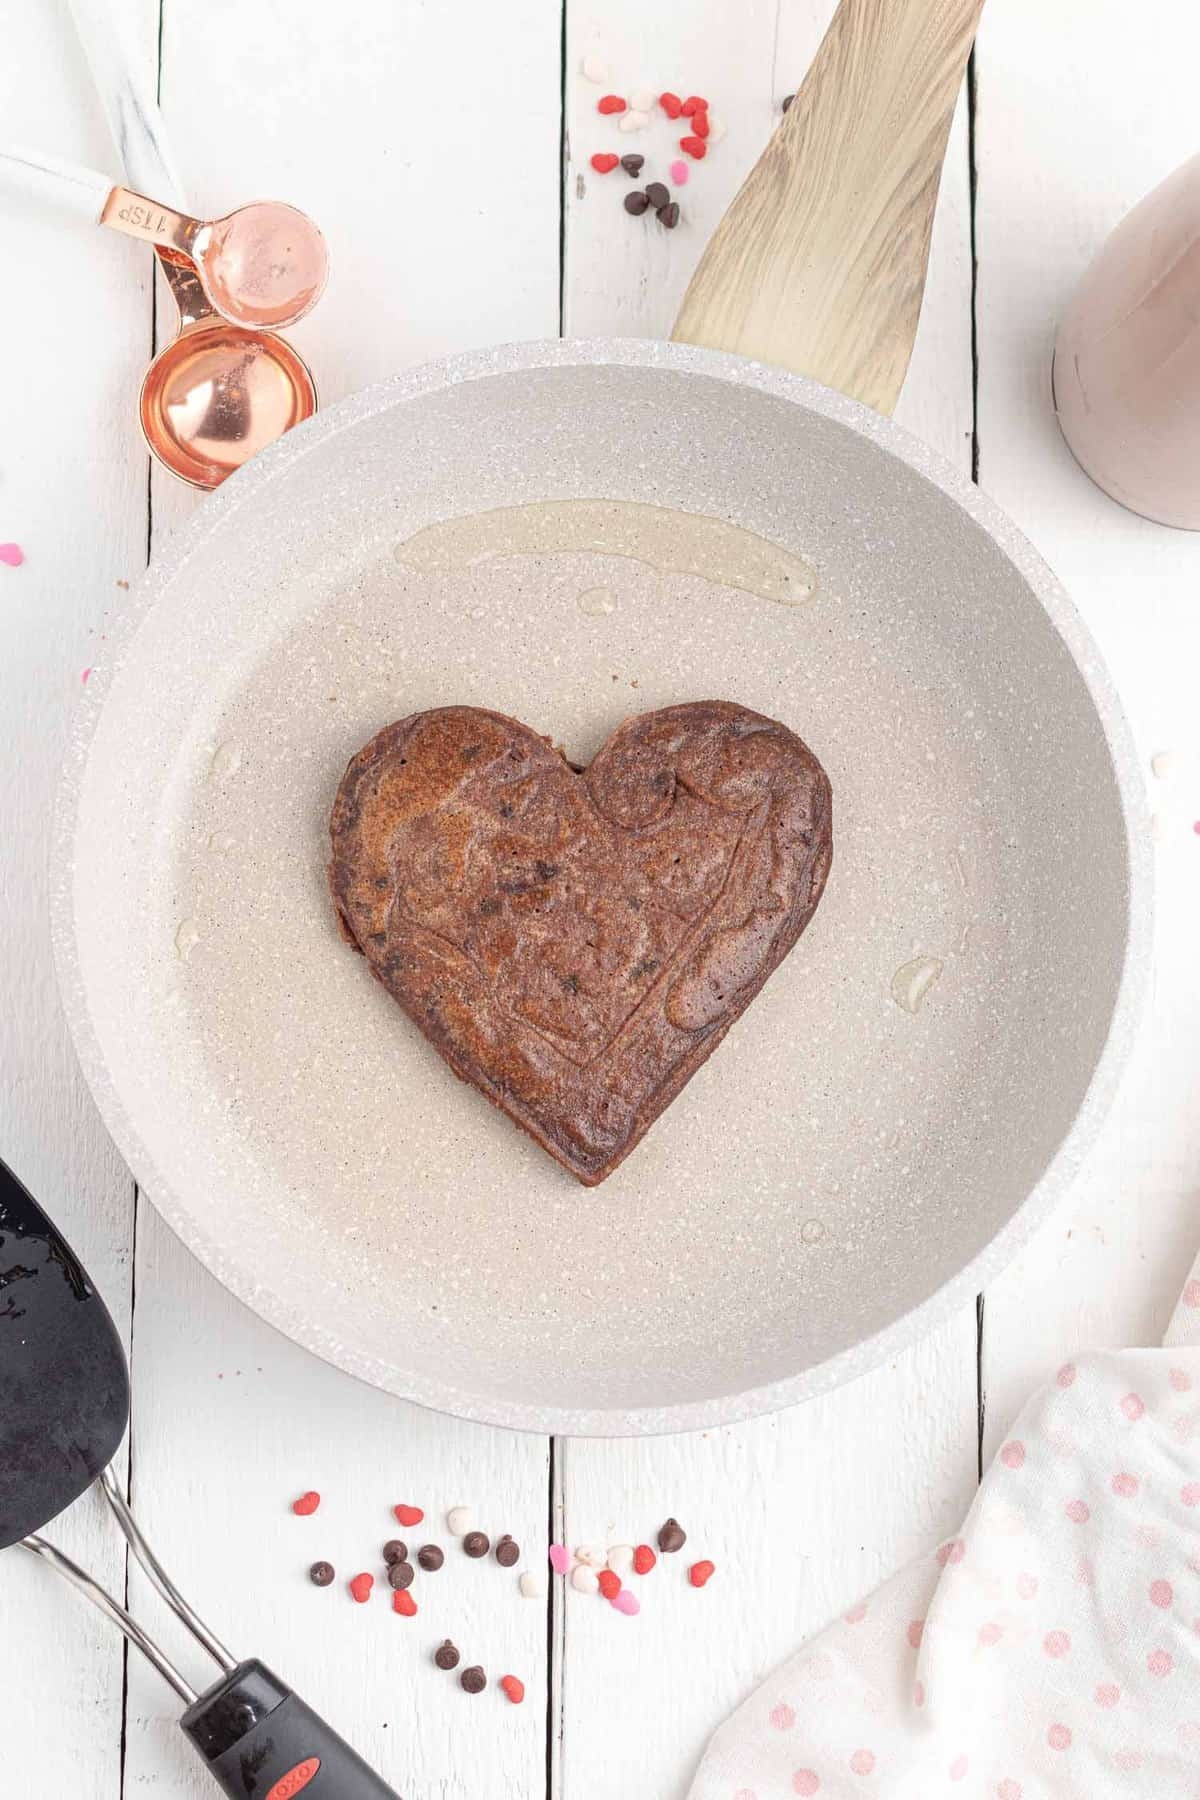 Heart shaped chocolate pancake on a white griddle.